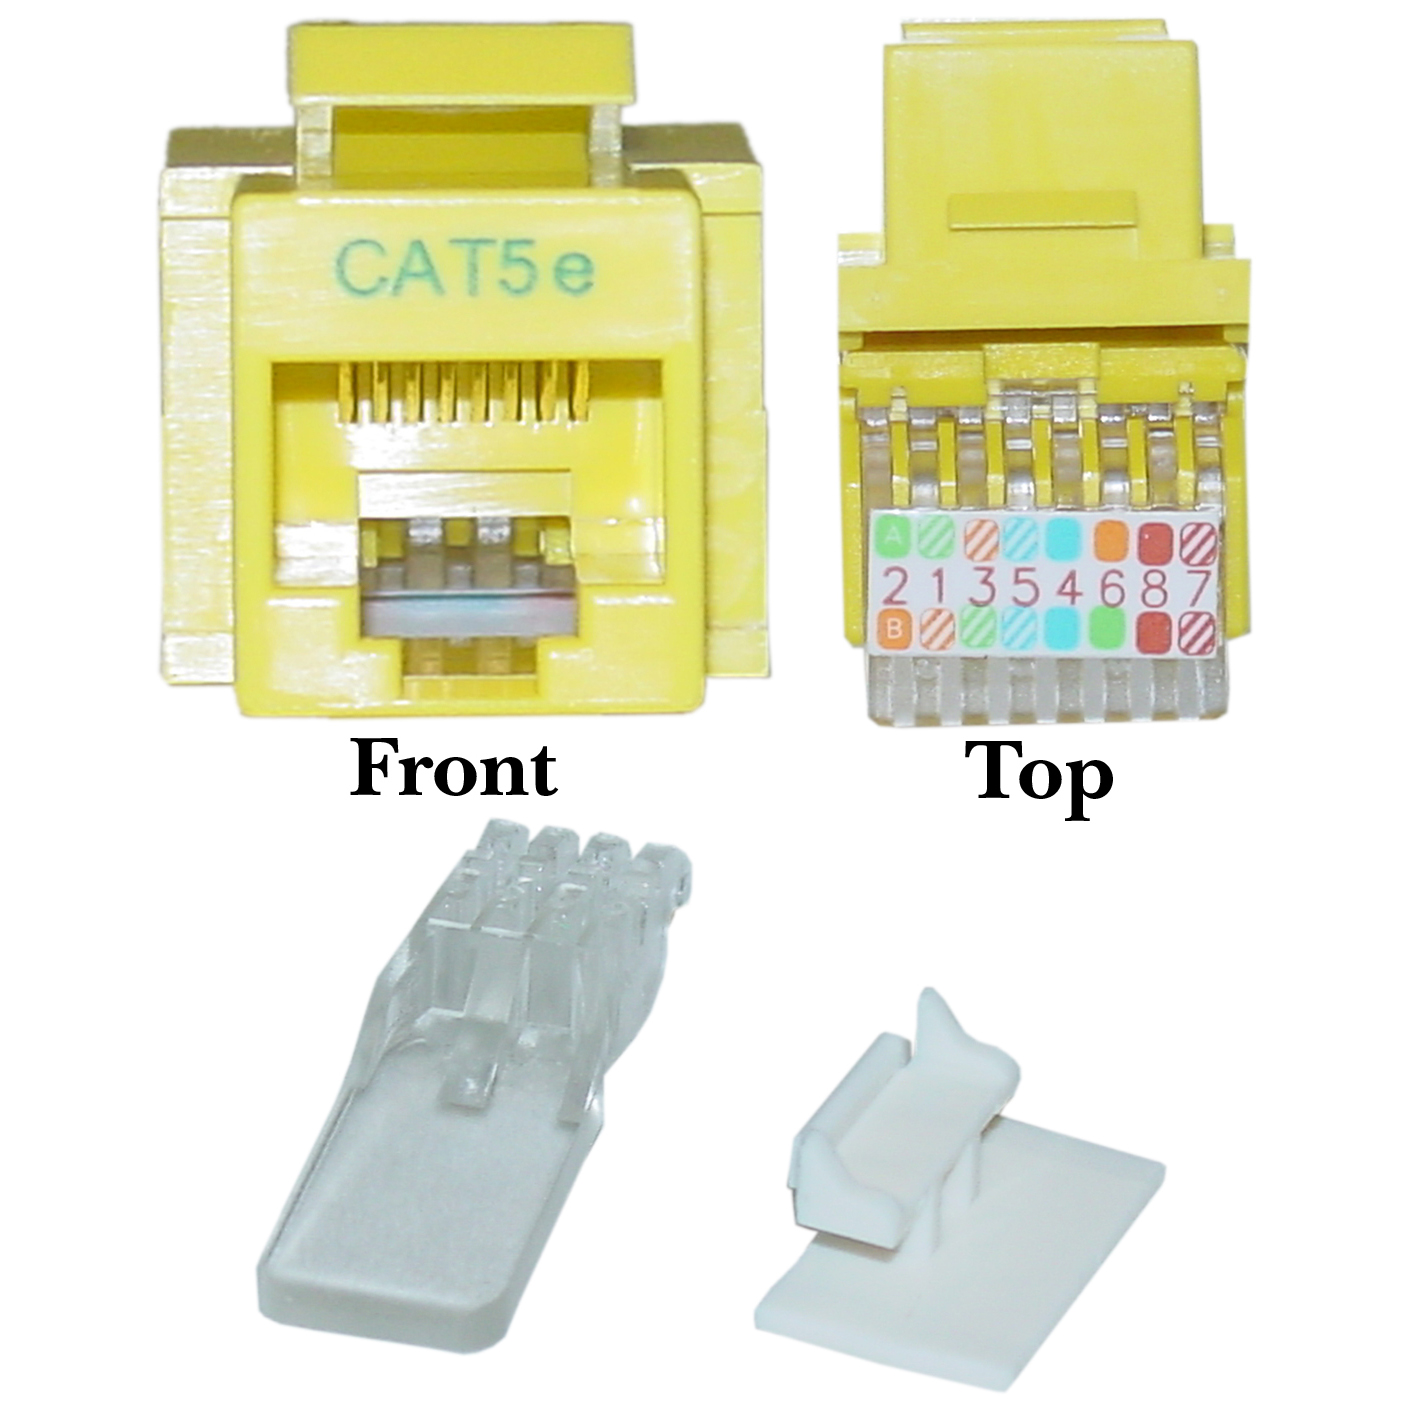 yellow cat5e rj45 keystone jack toolless cablewholesale keystone cat5e jack pinout rj45 keystone jack wiring diagram